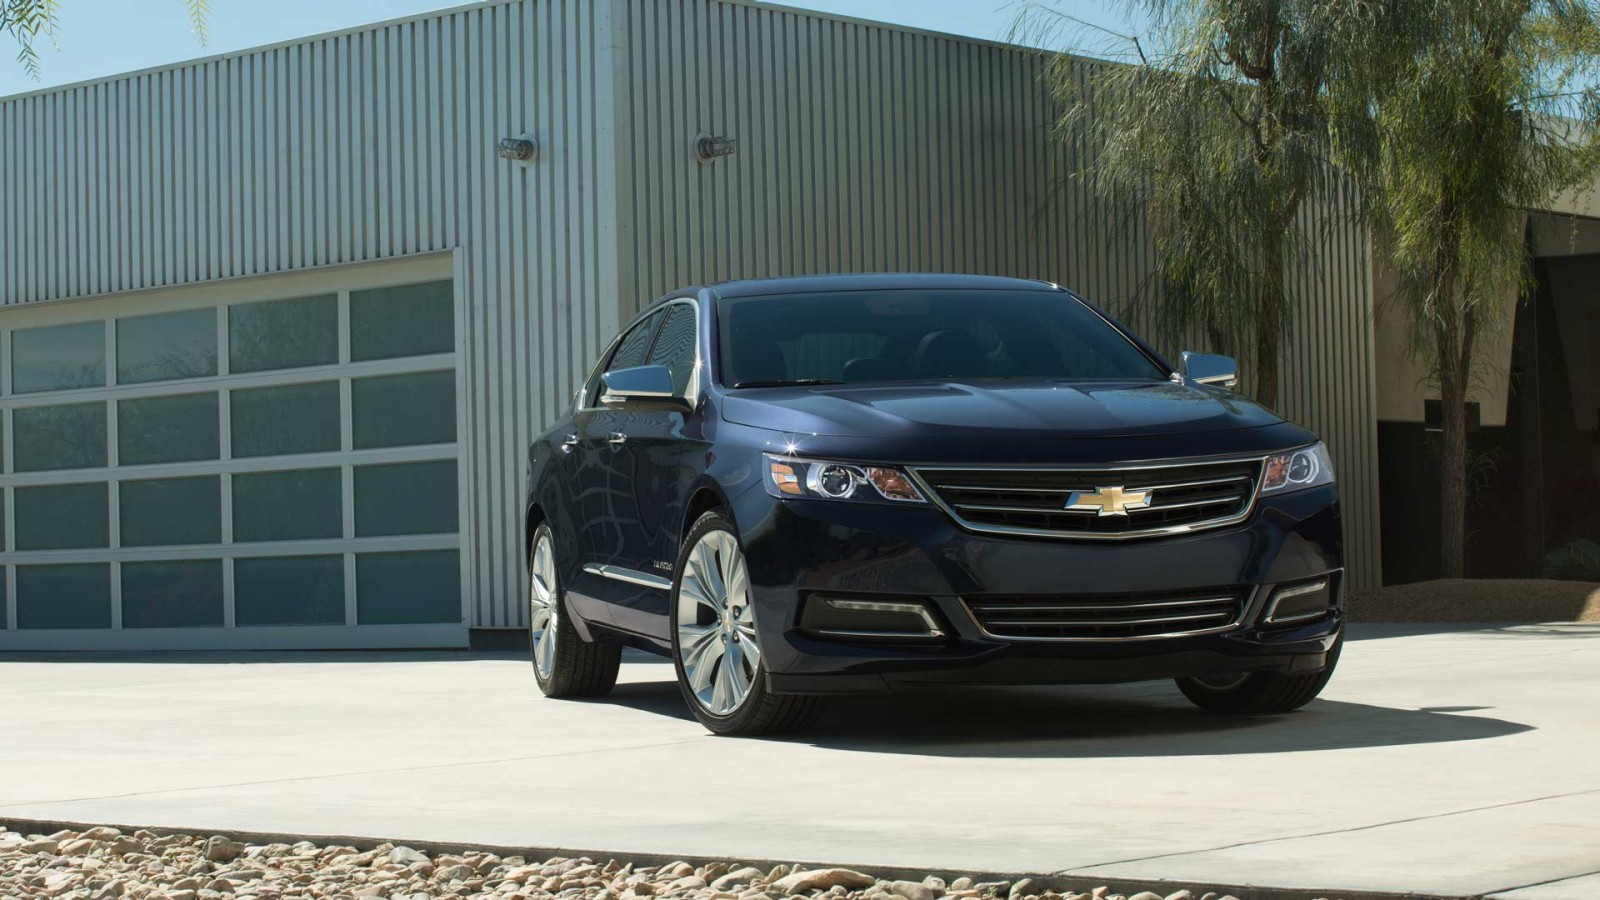 2014 Chevrolet Impala – Review